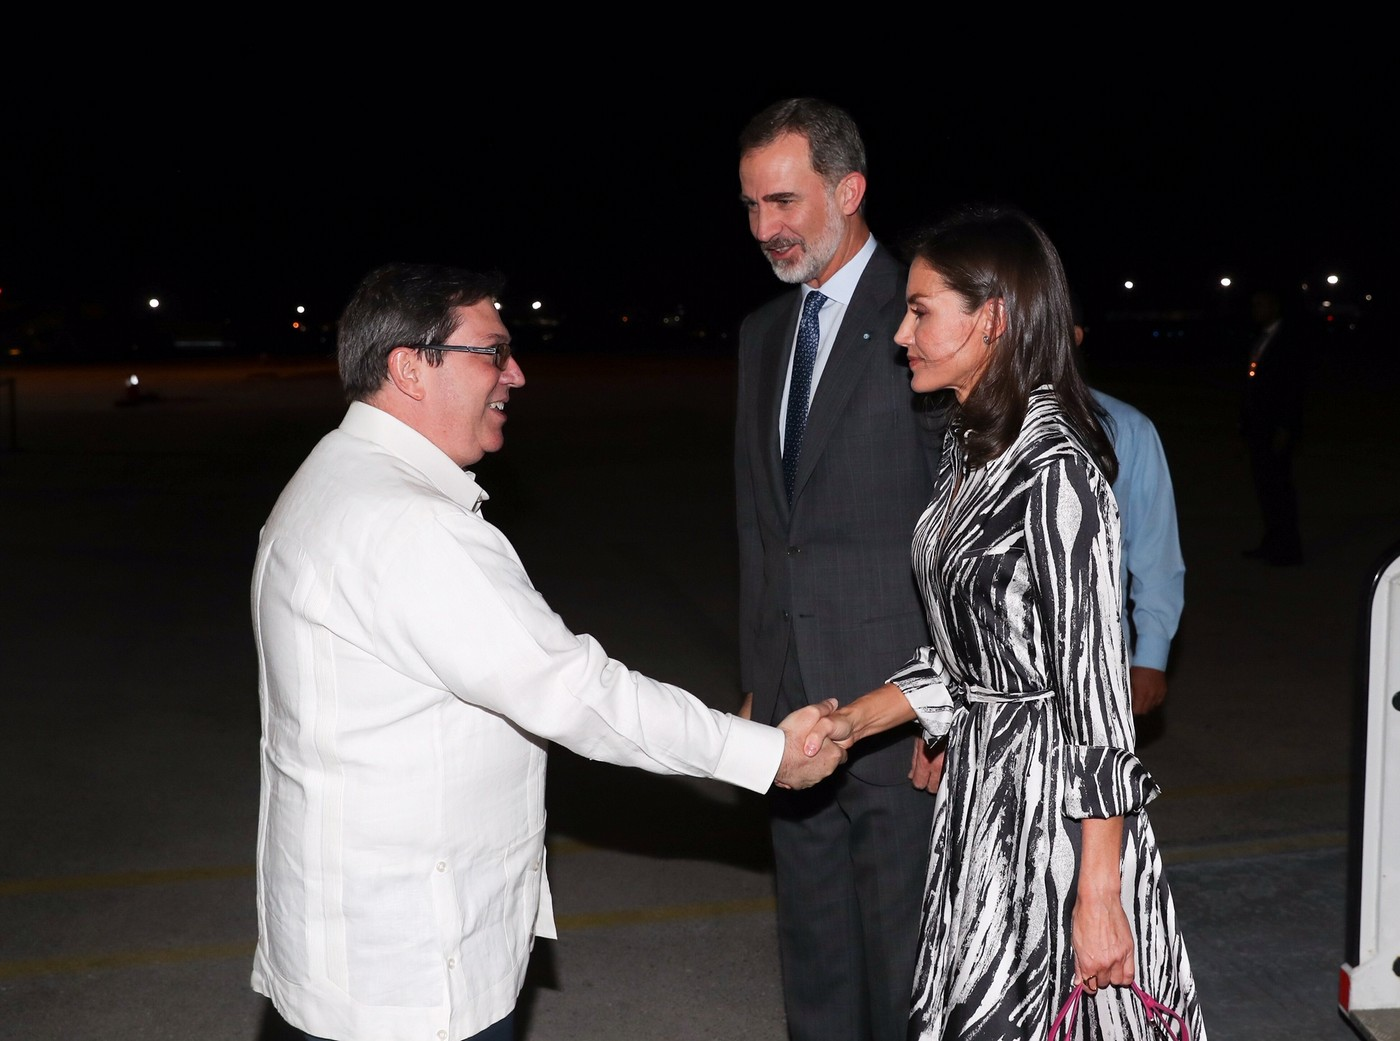 King Felipe and Queen Letizia of Spain arrived in Cuba for state visit